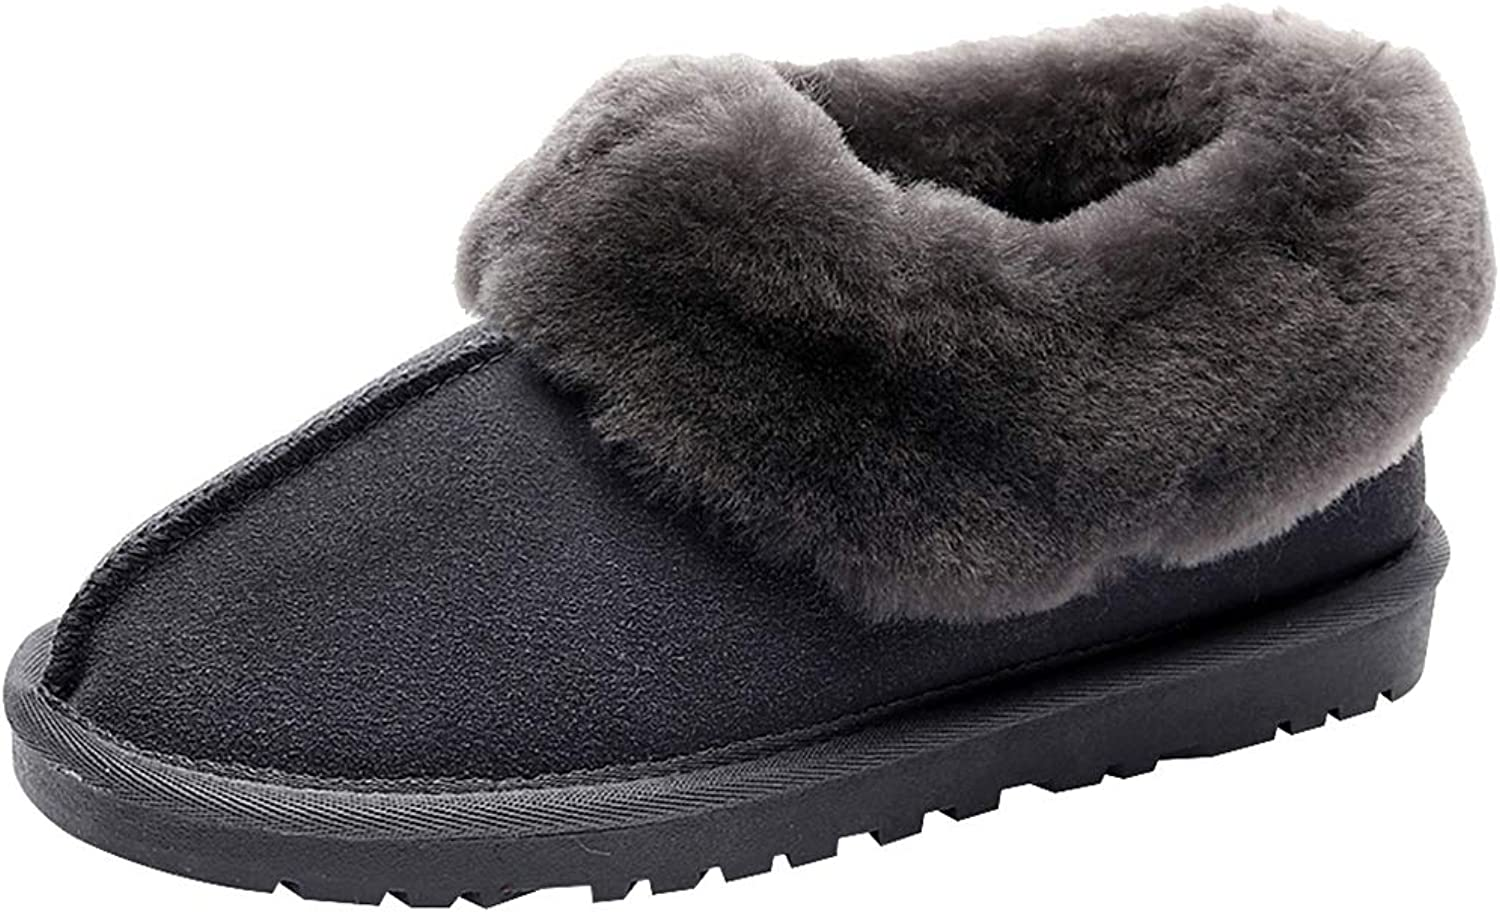 Rismart Women's Low Heel Outer with Thick Fluffy Collar and Lining Antiskid Warm Slippers